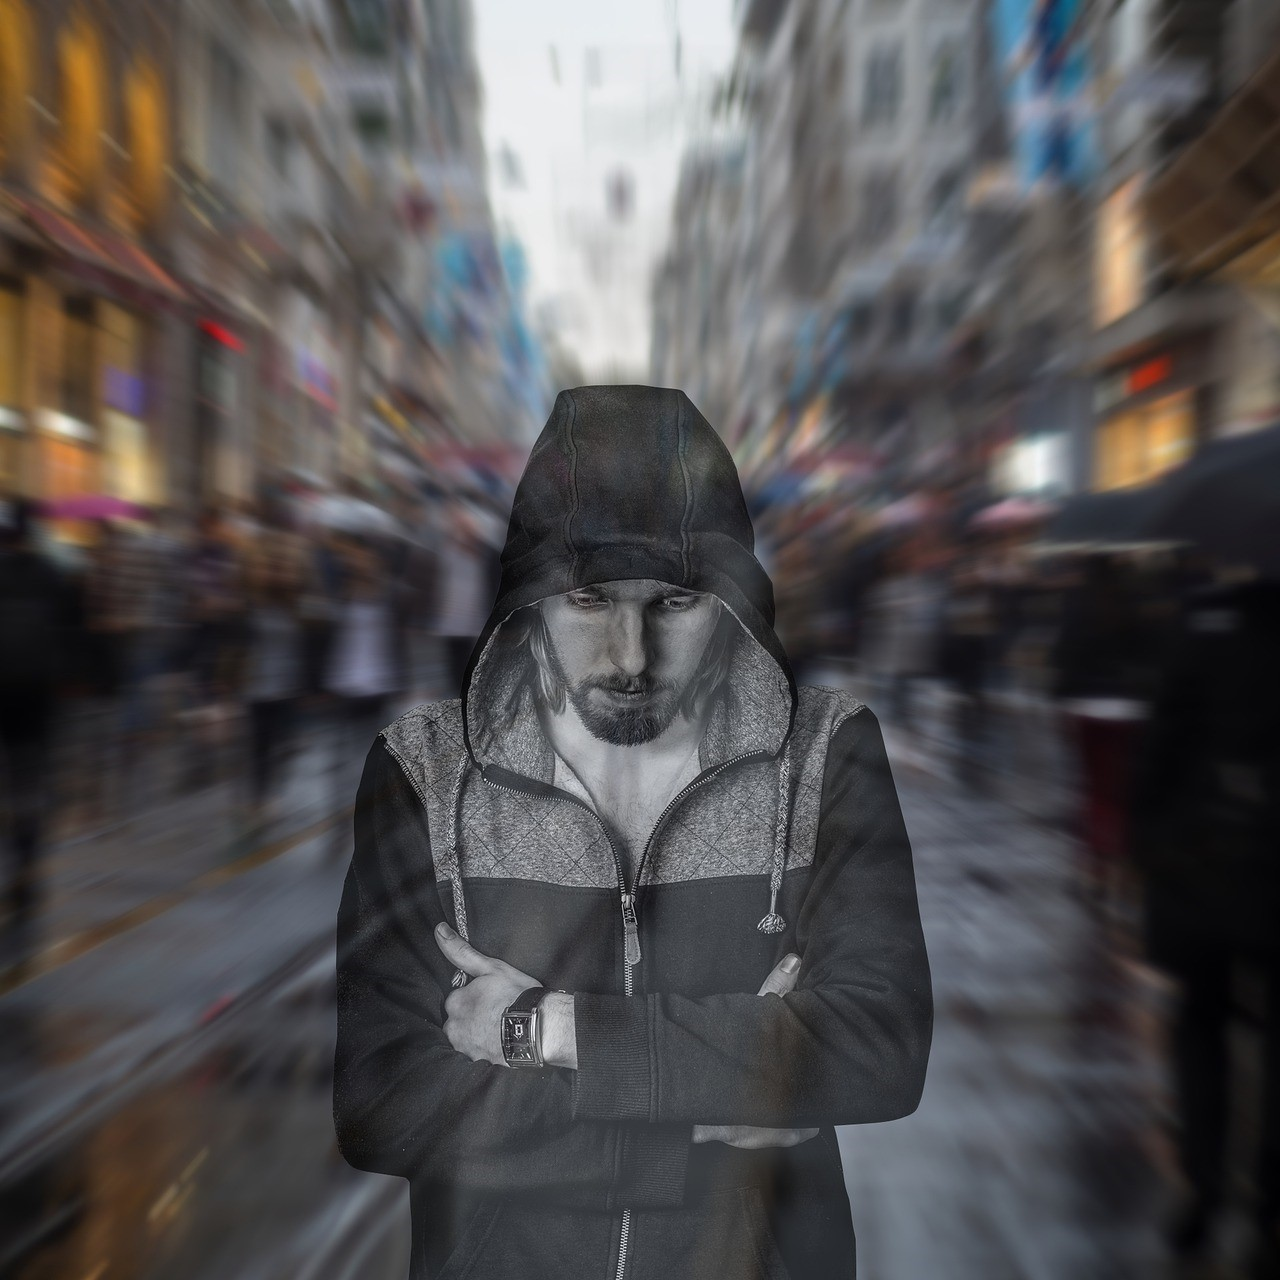 Workers report worse mental health following pandemic